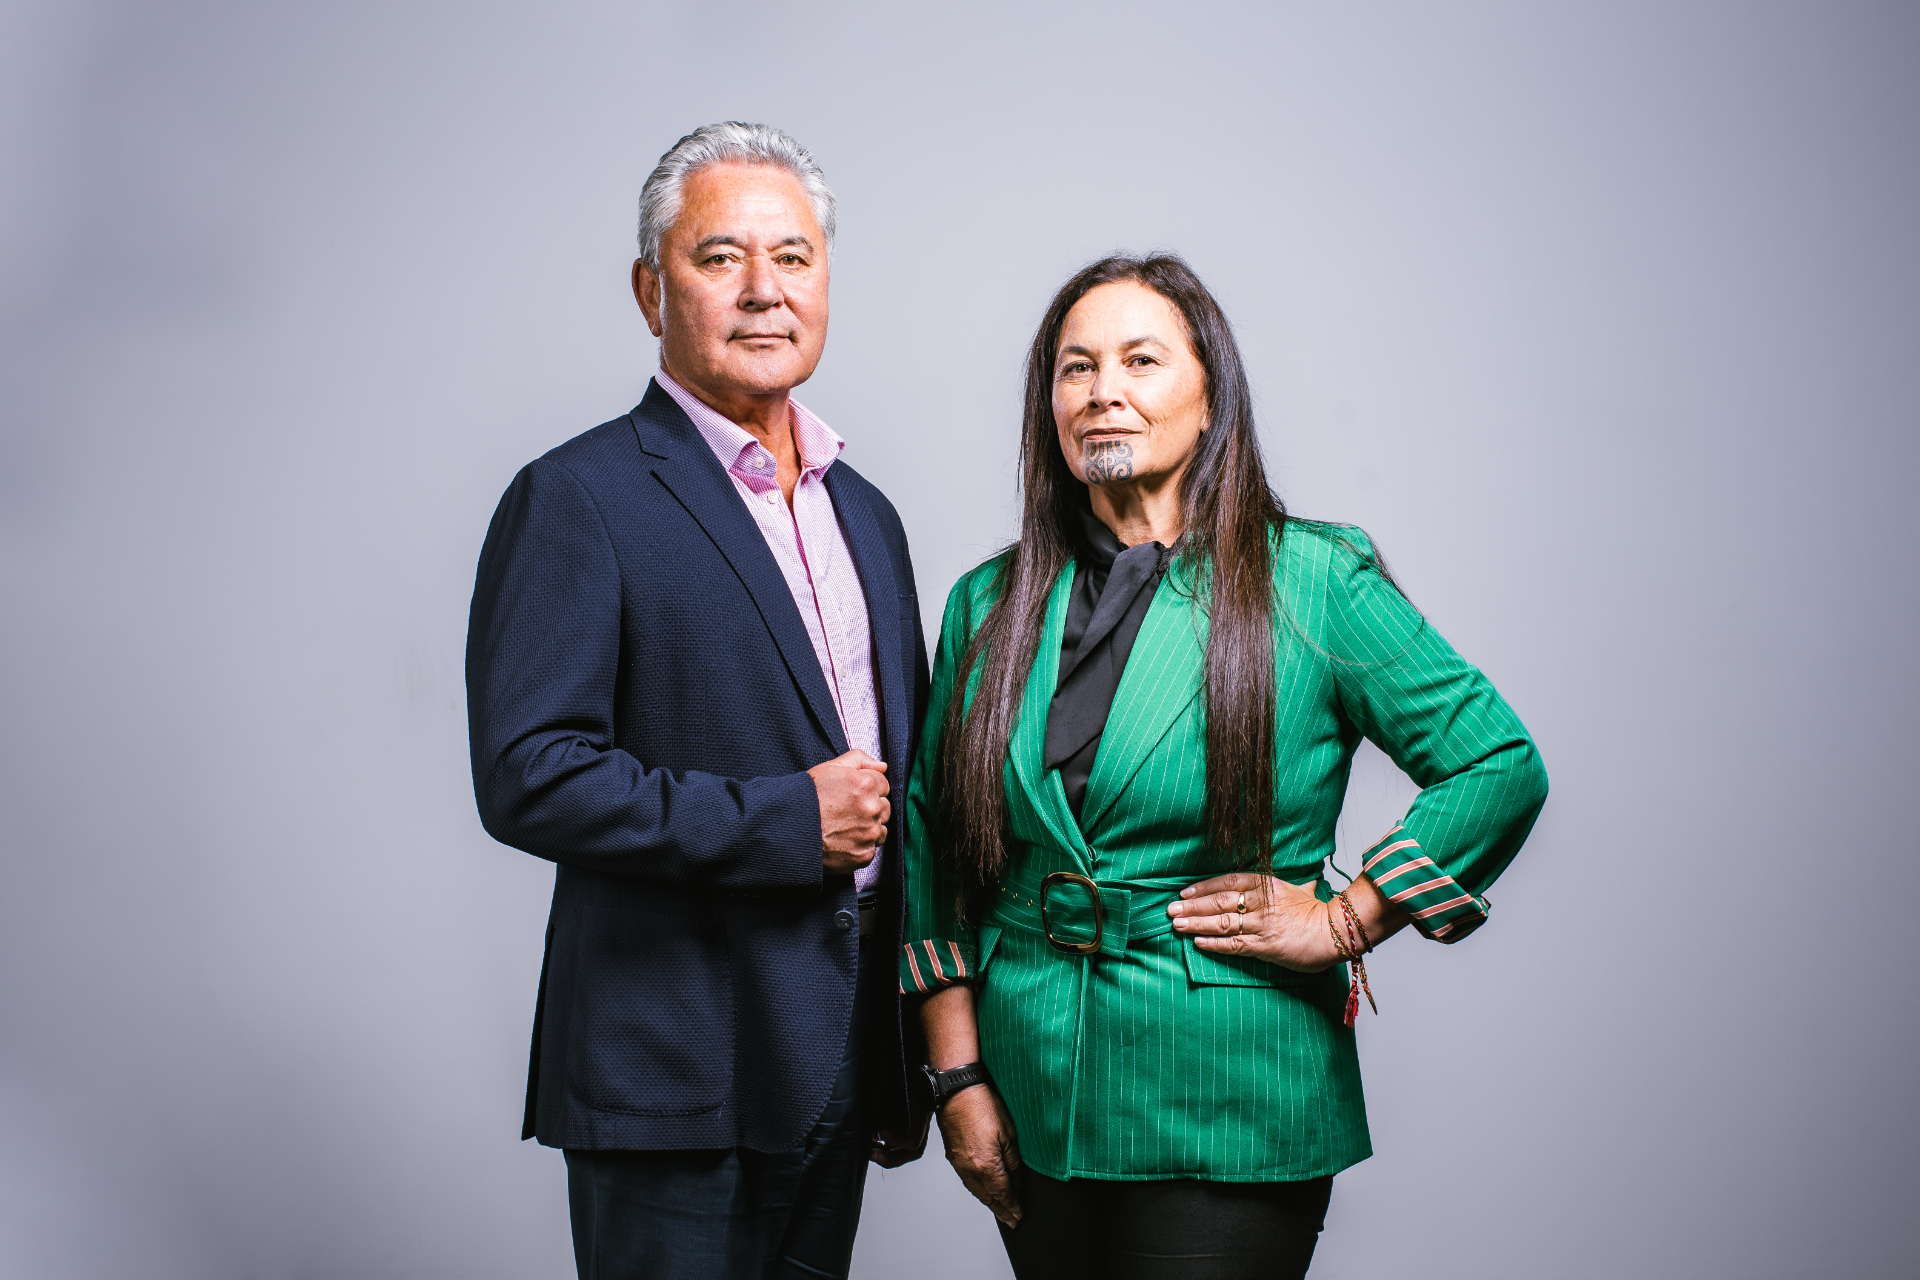 Co-leaders John Tamihere and Debbie Ngarewa-Packer